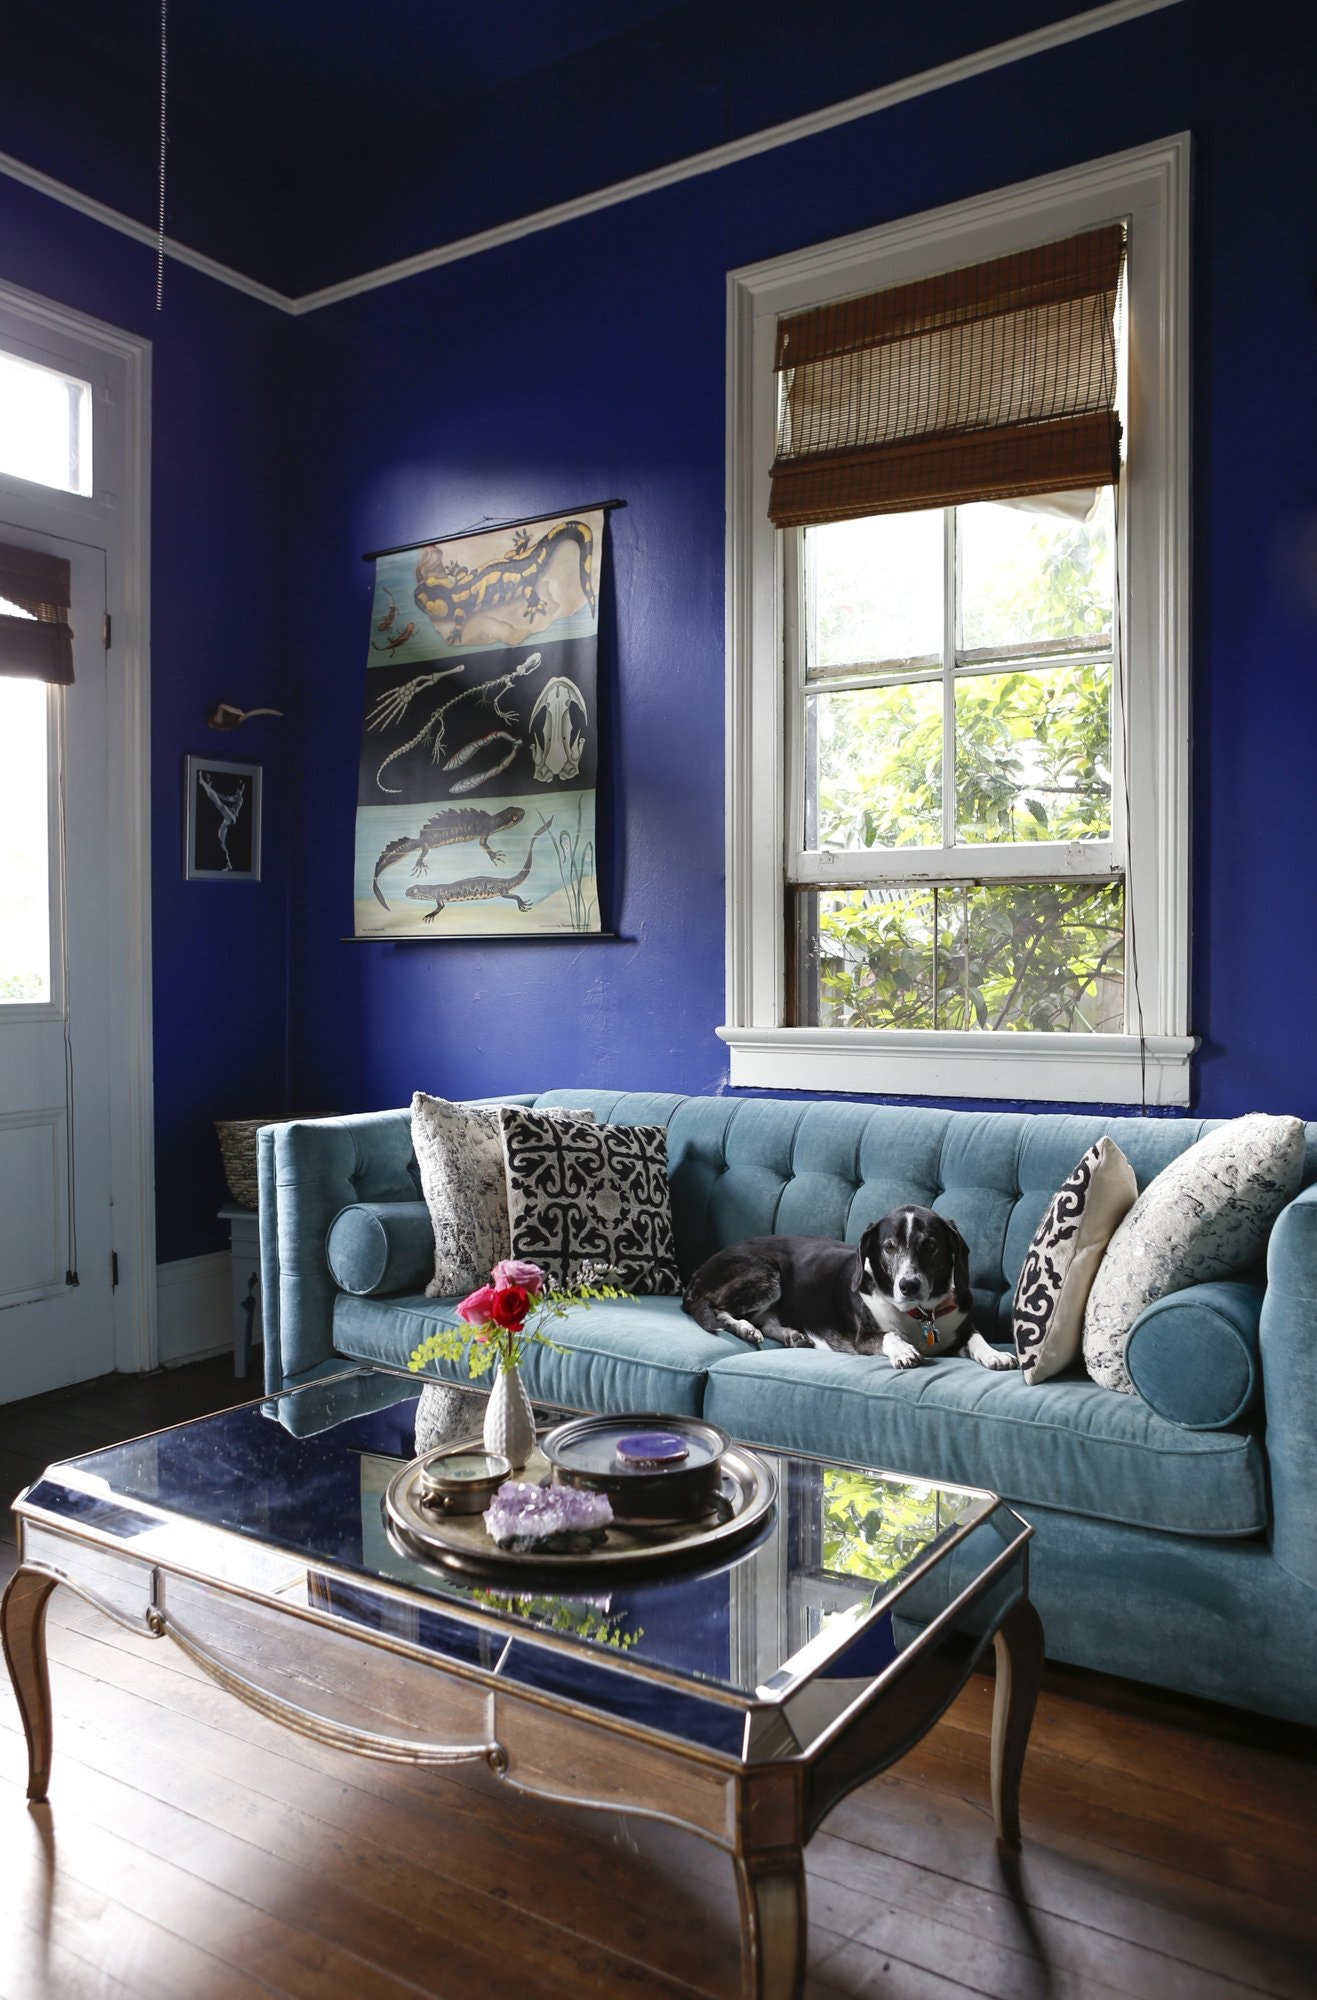 Royal Blue Wall Paint Living Room Sky Blue Velvet Couch Jewel Tones